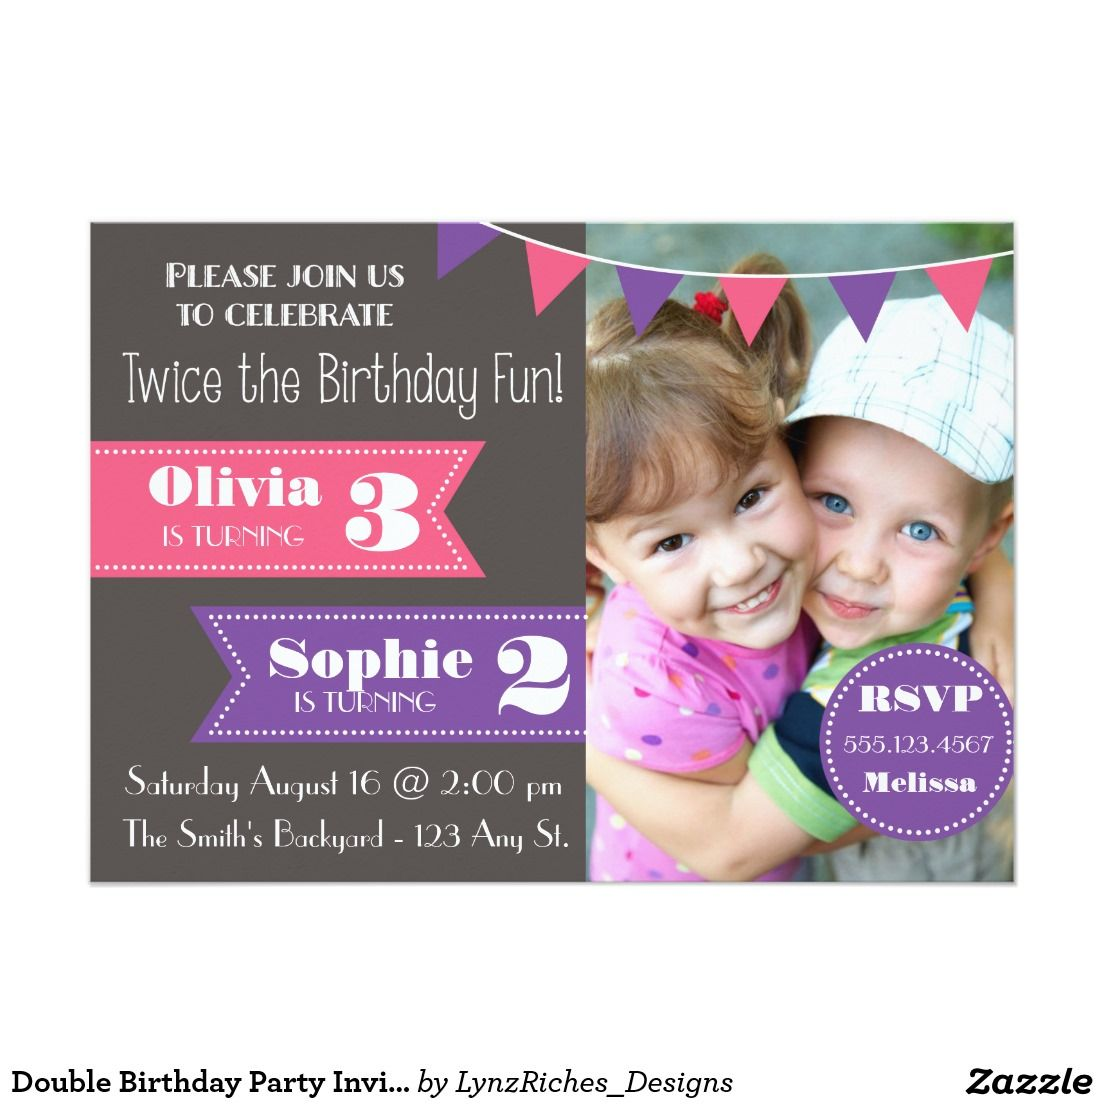 Joint Birthday Party Invitation Boy Girl Girl Girl Boy Boy - Birthday invitation messages for 5 year old boy